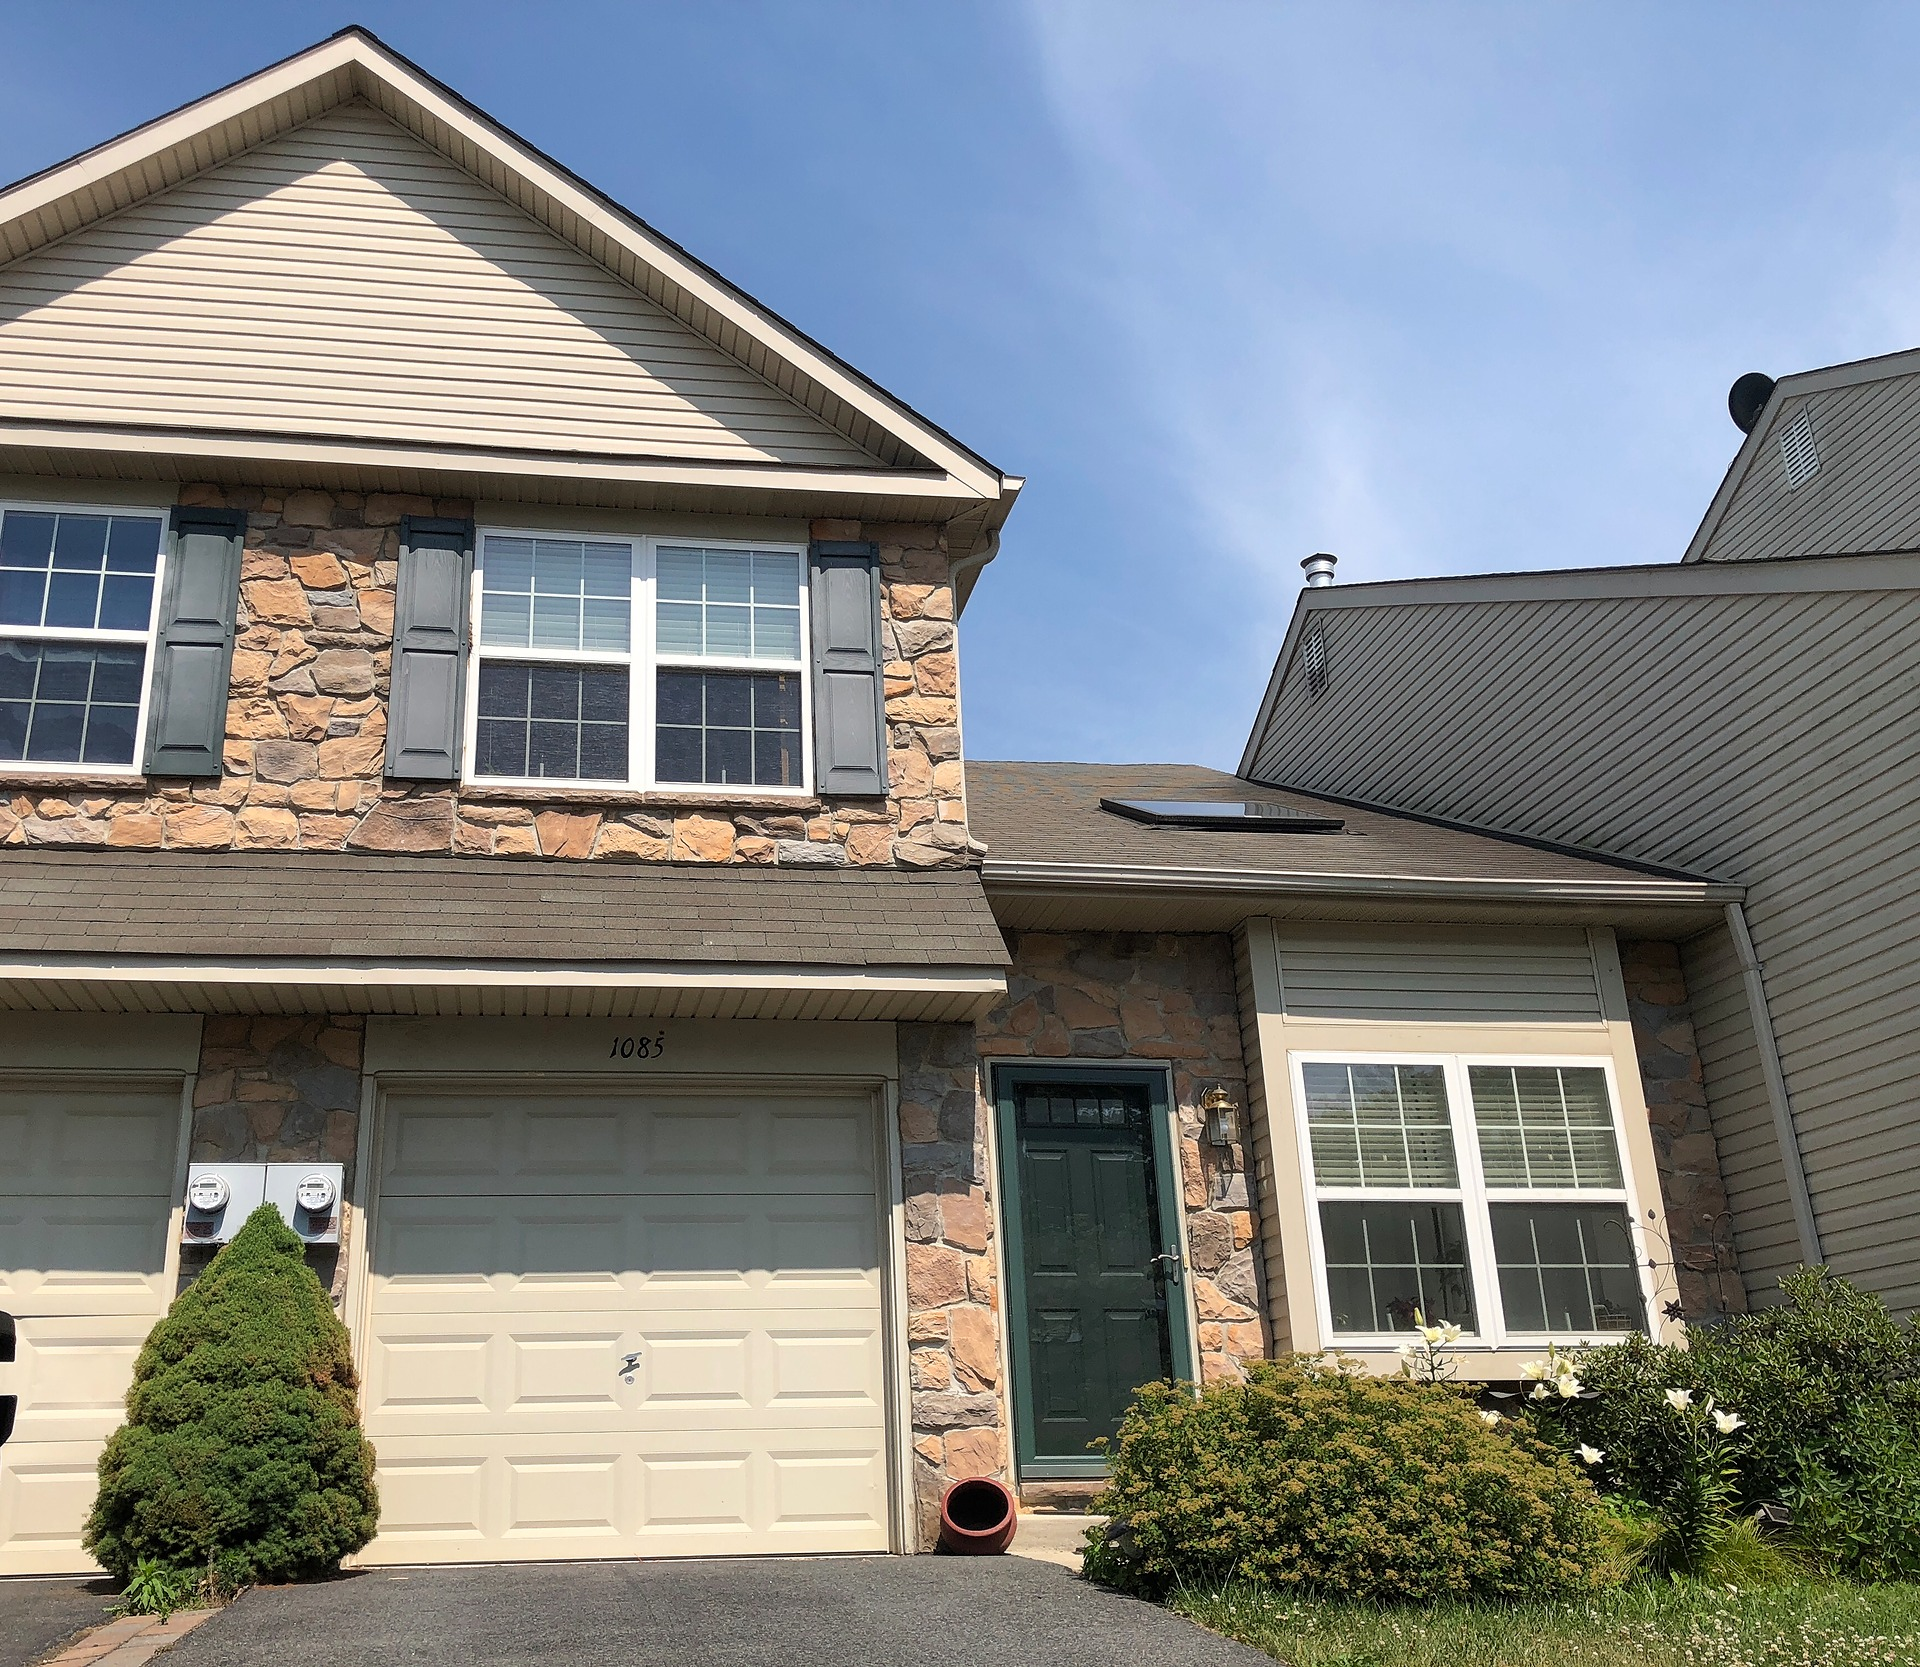 Lower Macungie - 3 Beds 3 Baths $215,000